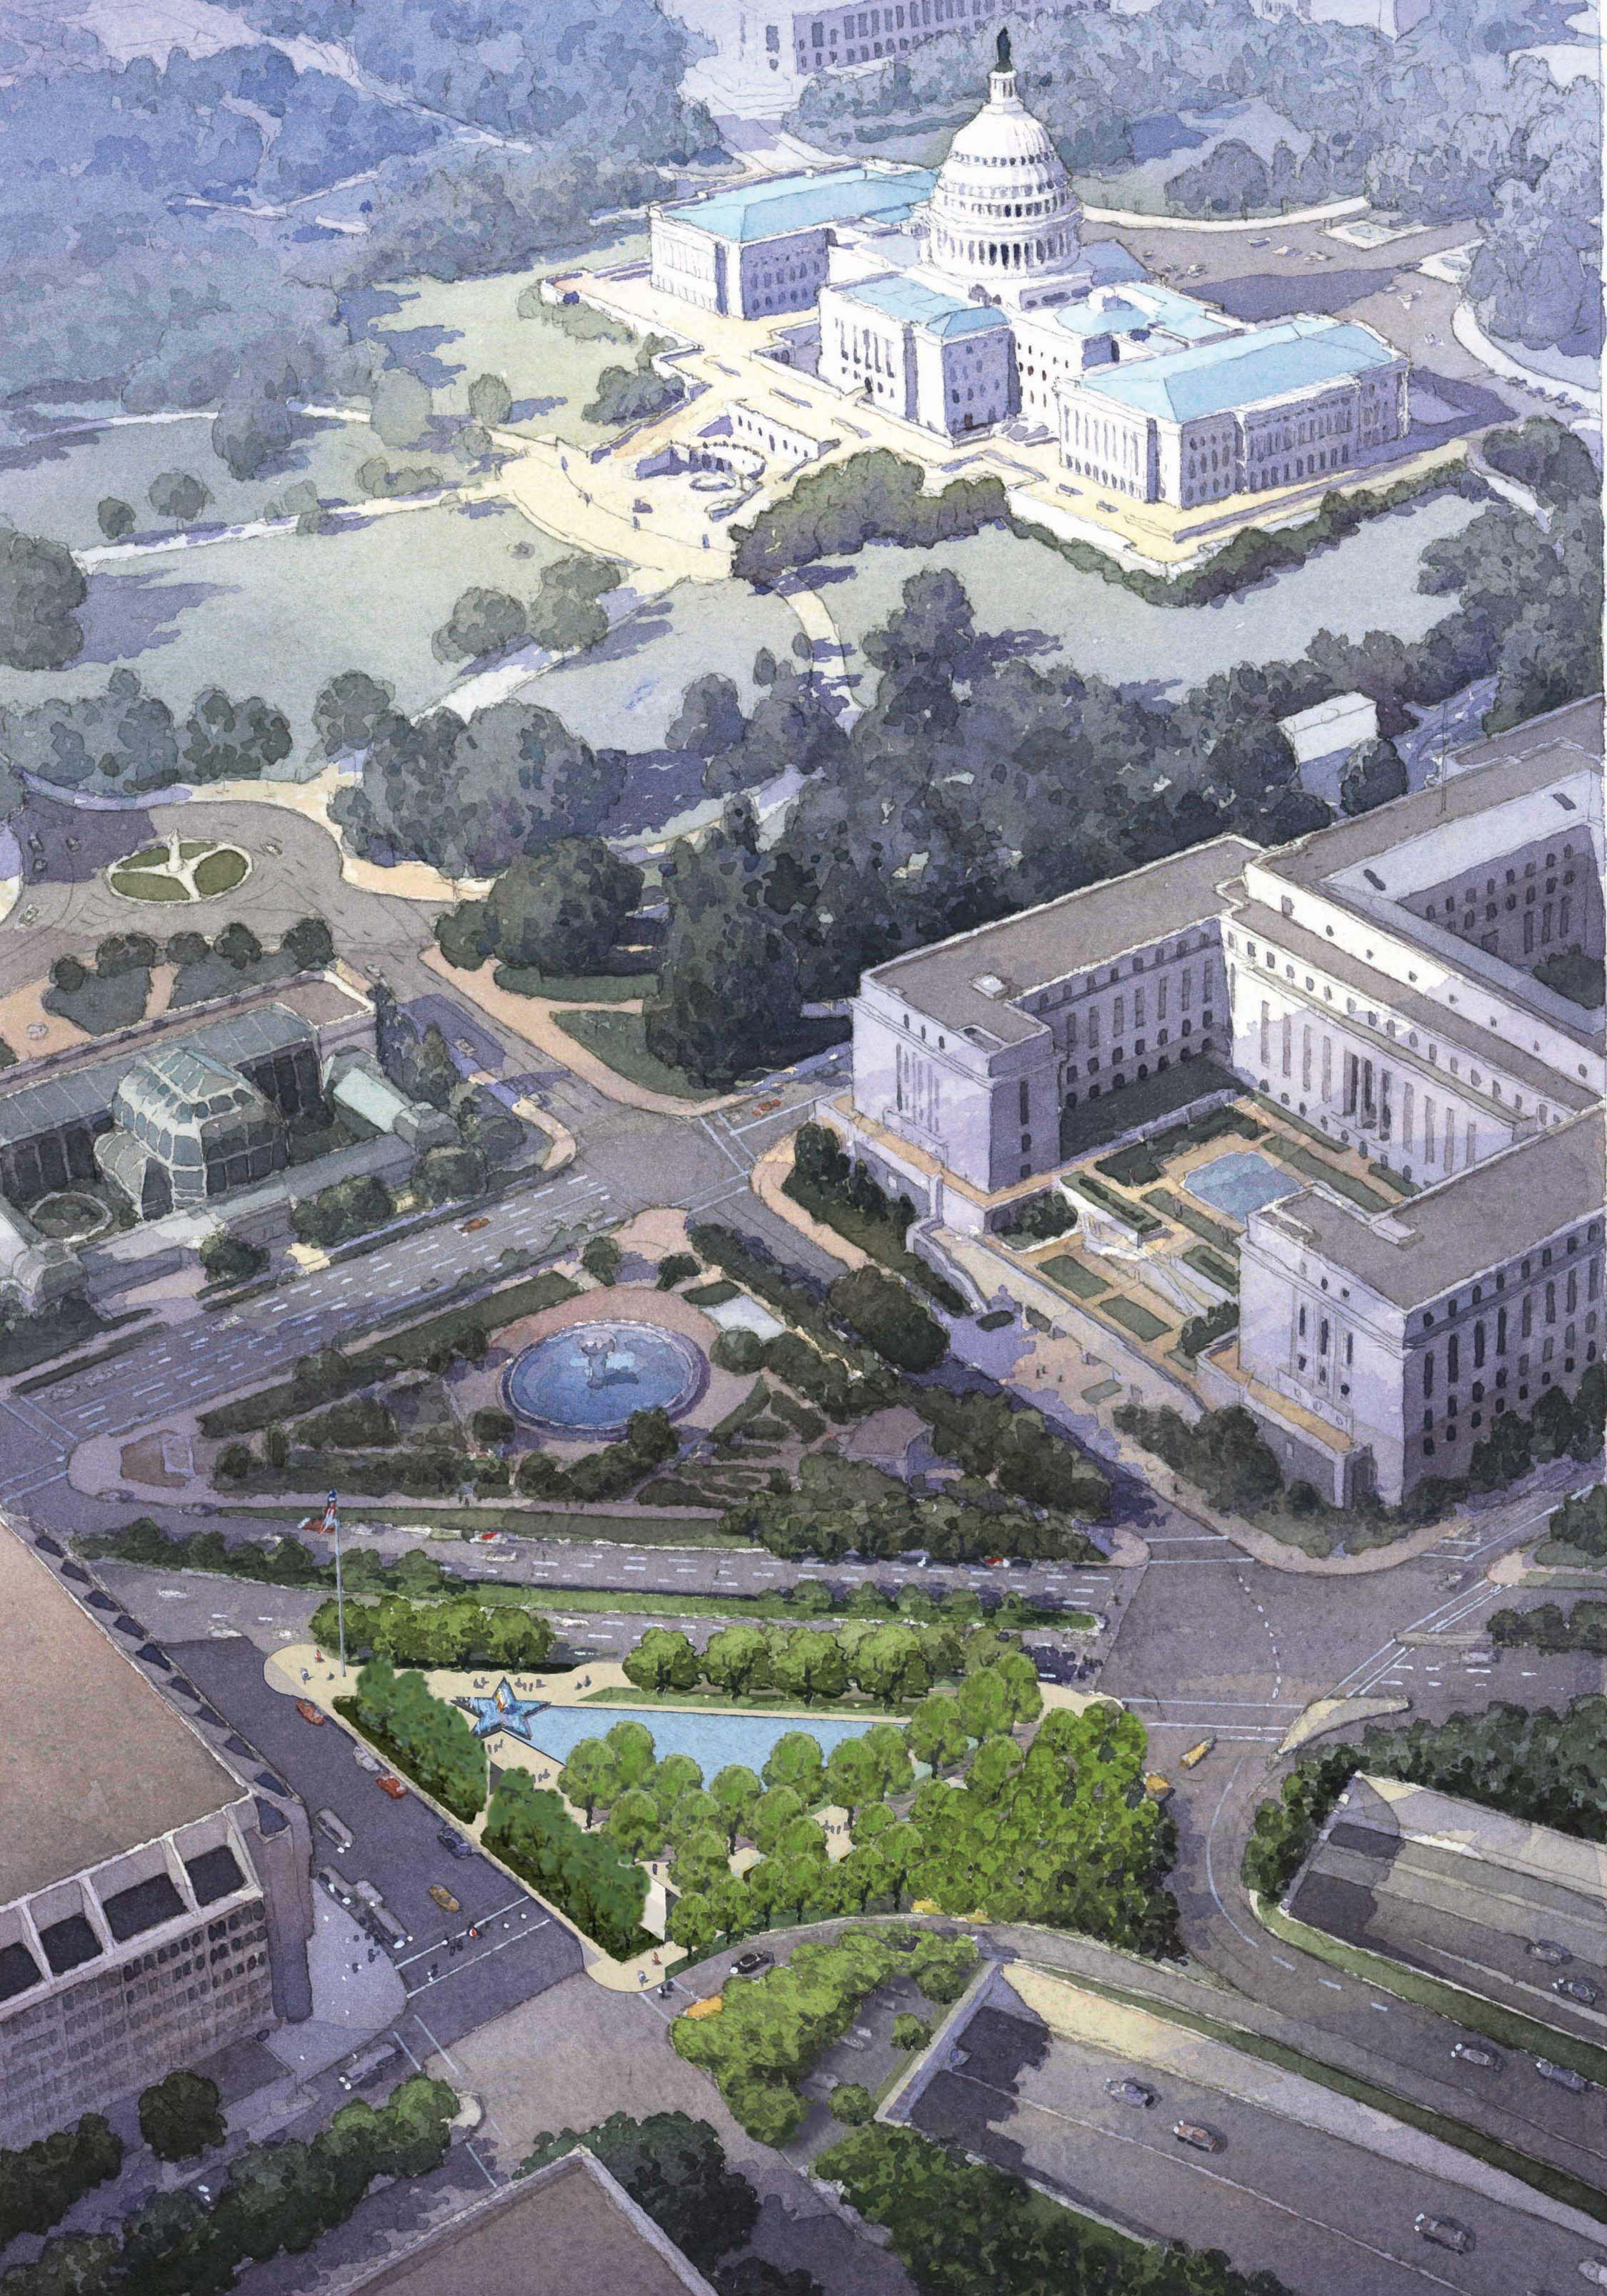 AbledWarriors photo shows a watercolor rendering by Michael Vergason Landscape Architects of their design for The American veterans Disabled For Life Memorial in Washington, D.C. The watercolor is done as an aerial view of the site with the U.S. Capitol building in the distance in the top right corner. The site is a rectangular space with a fountain in the shape of a granite star and a reflecting pool bordered on one side by stone walls with various inscriptions and etched glass panels with bronze sculptures surrounded by a grove of trees.